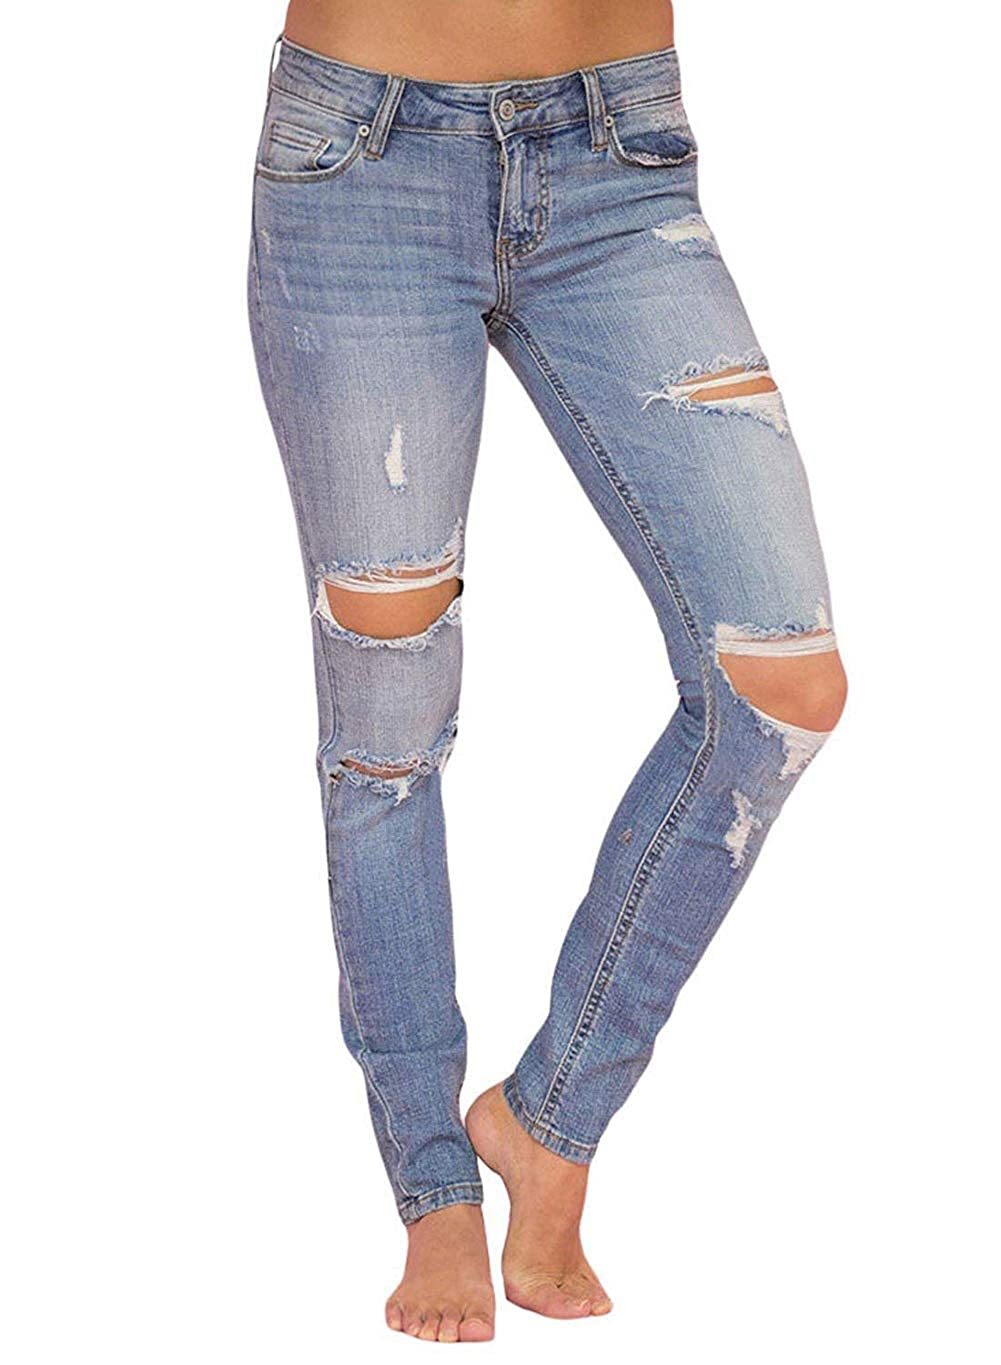 896e9e4bd2 Womens Slim Fit Stretch Ripped Hole Skinny Wash Blue Jeans Pants Curvy  Distressed High Waisted Cuffed Denim Pants Charming Design: Slim fit  stretchy skinny ...